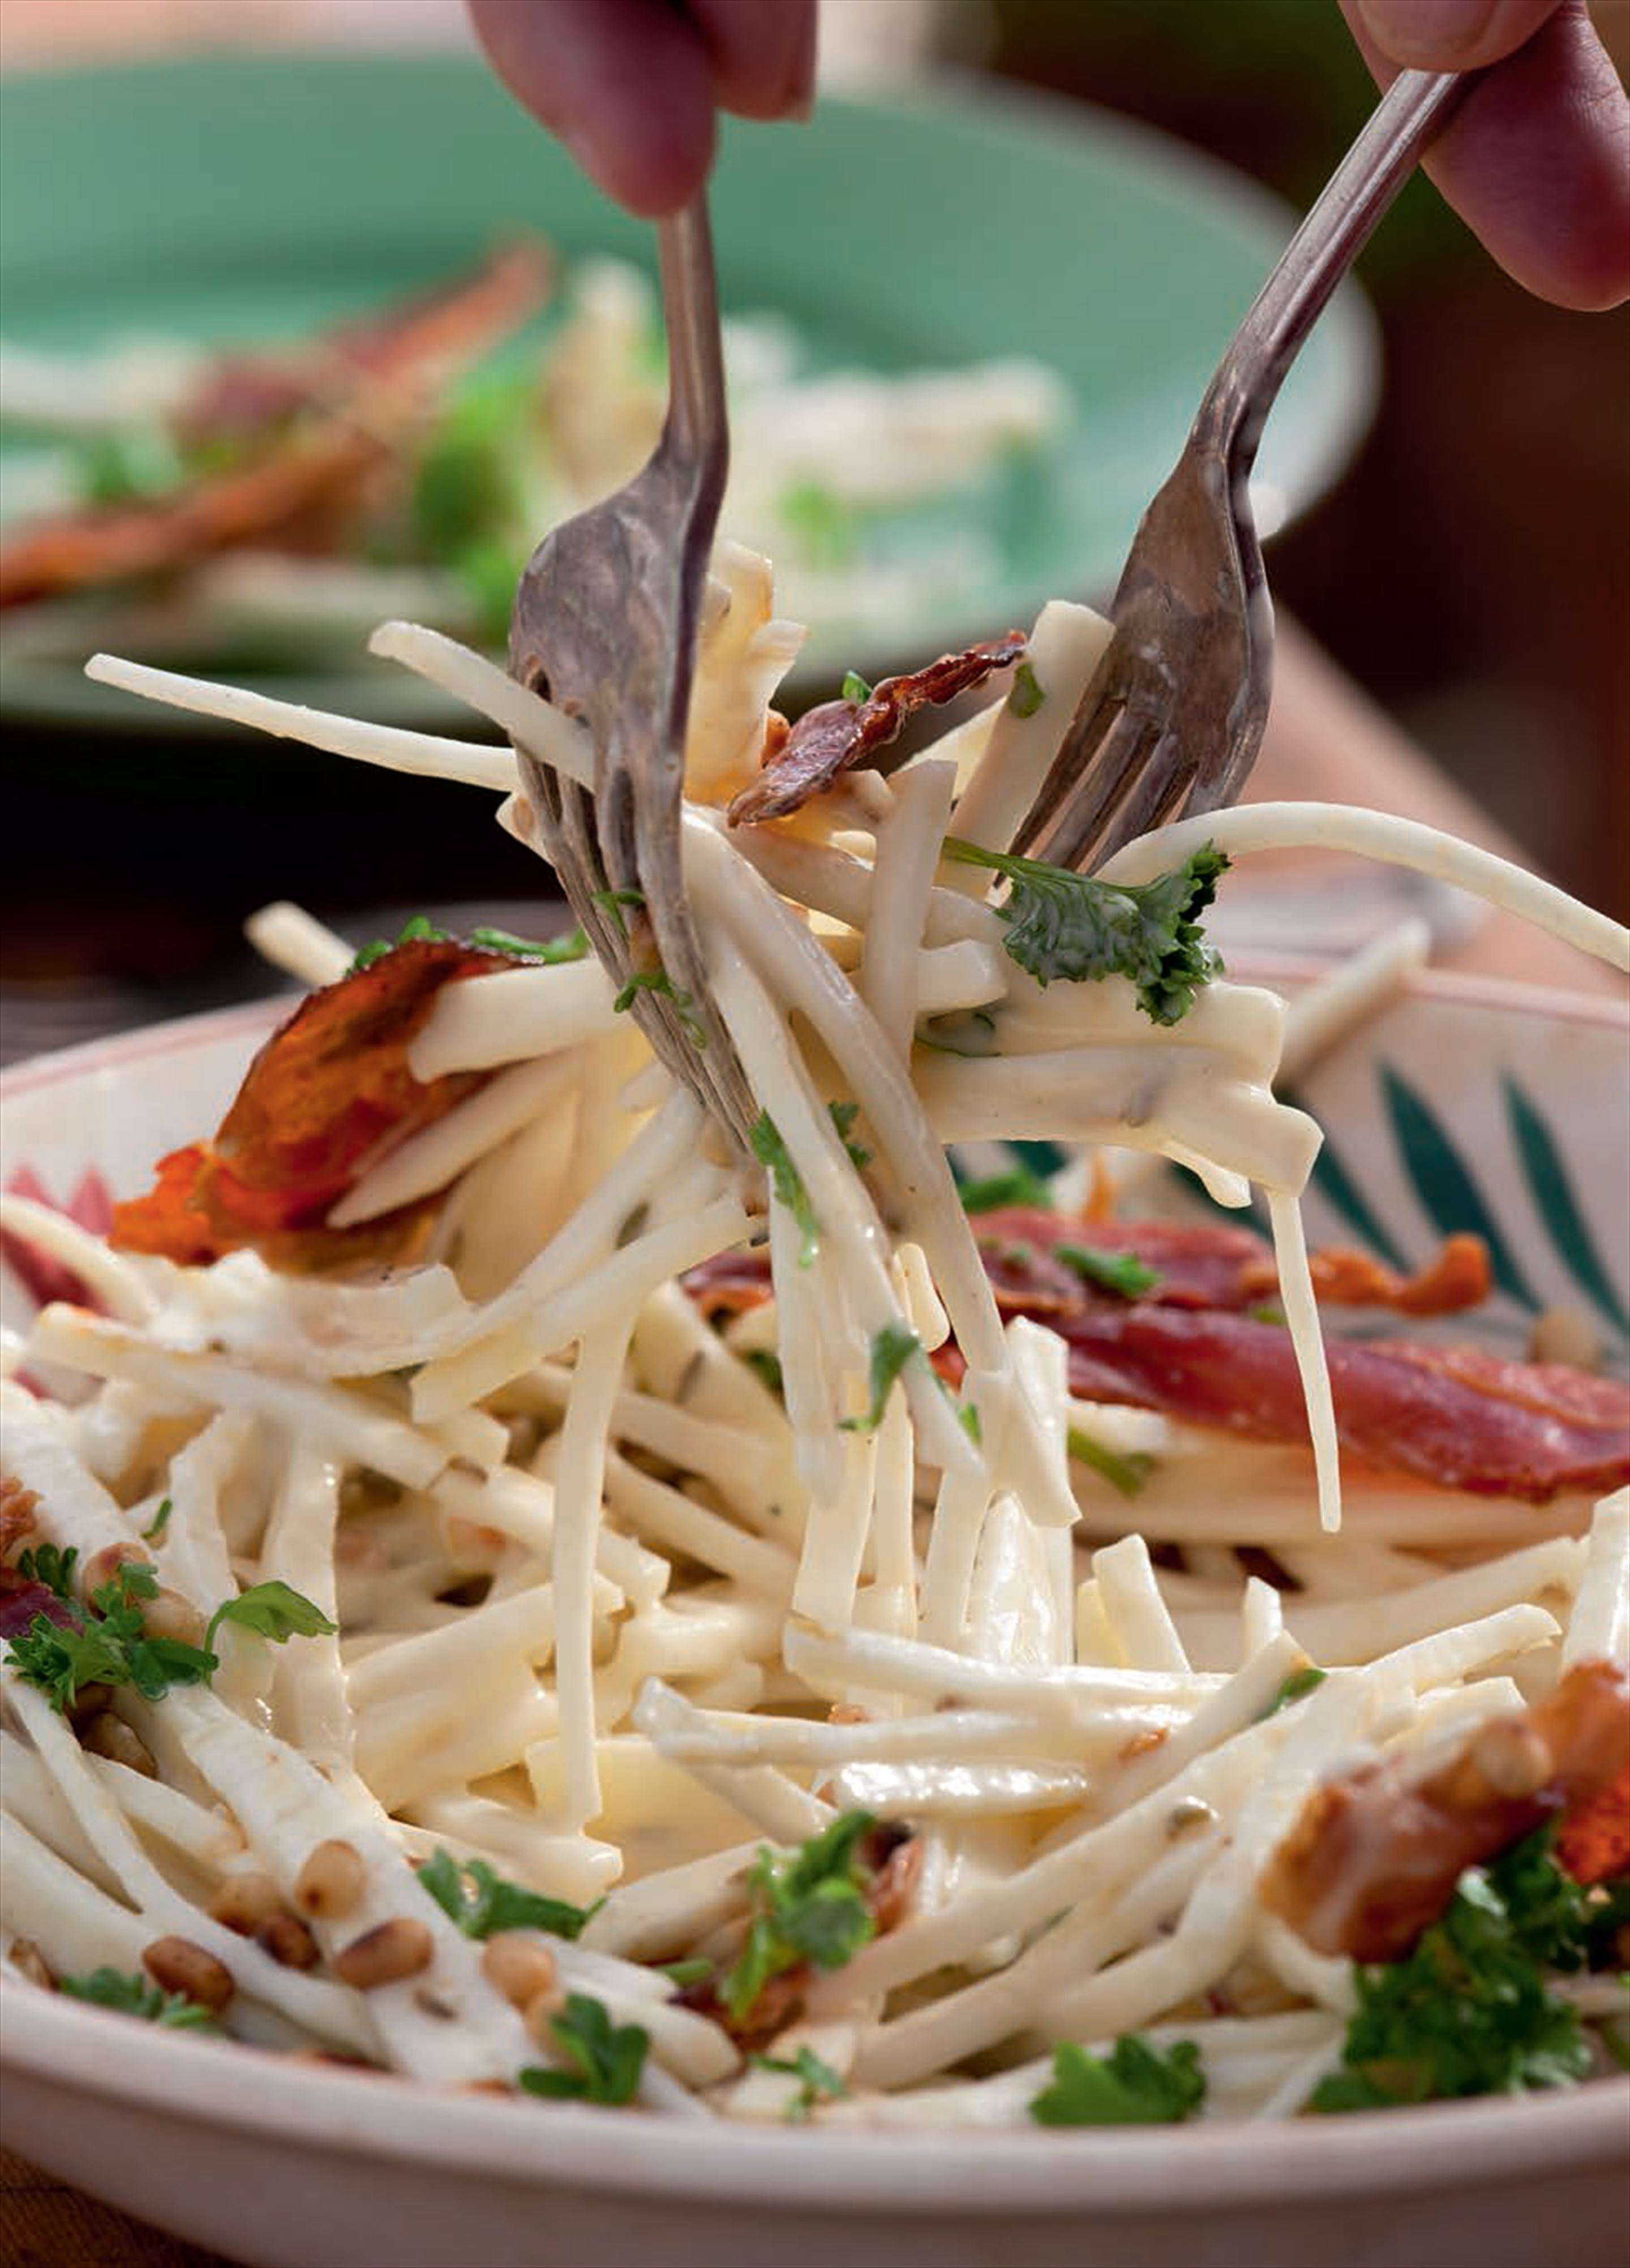 Celeriac salad with apple, pine nuts and prosciutto